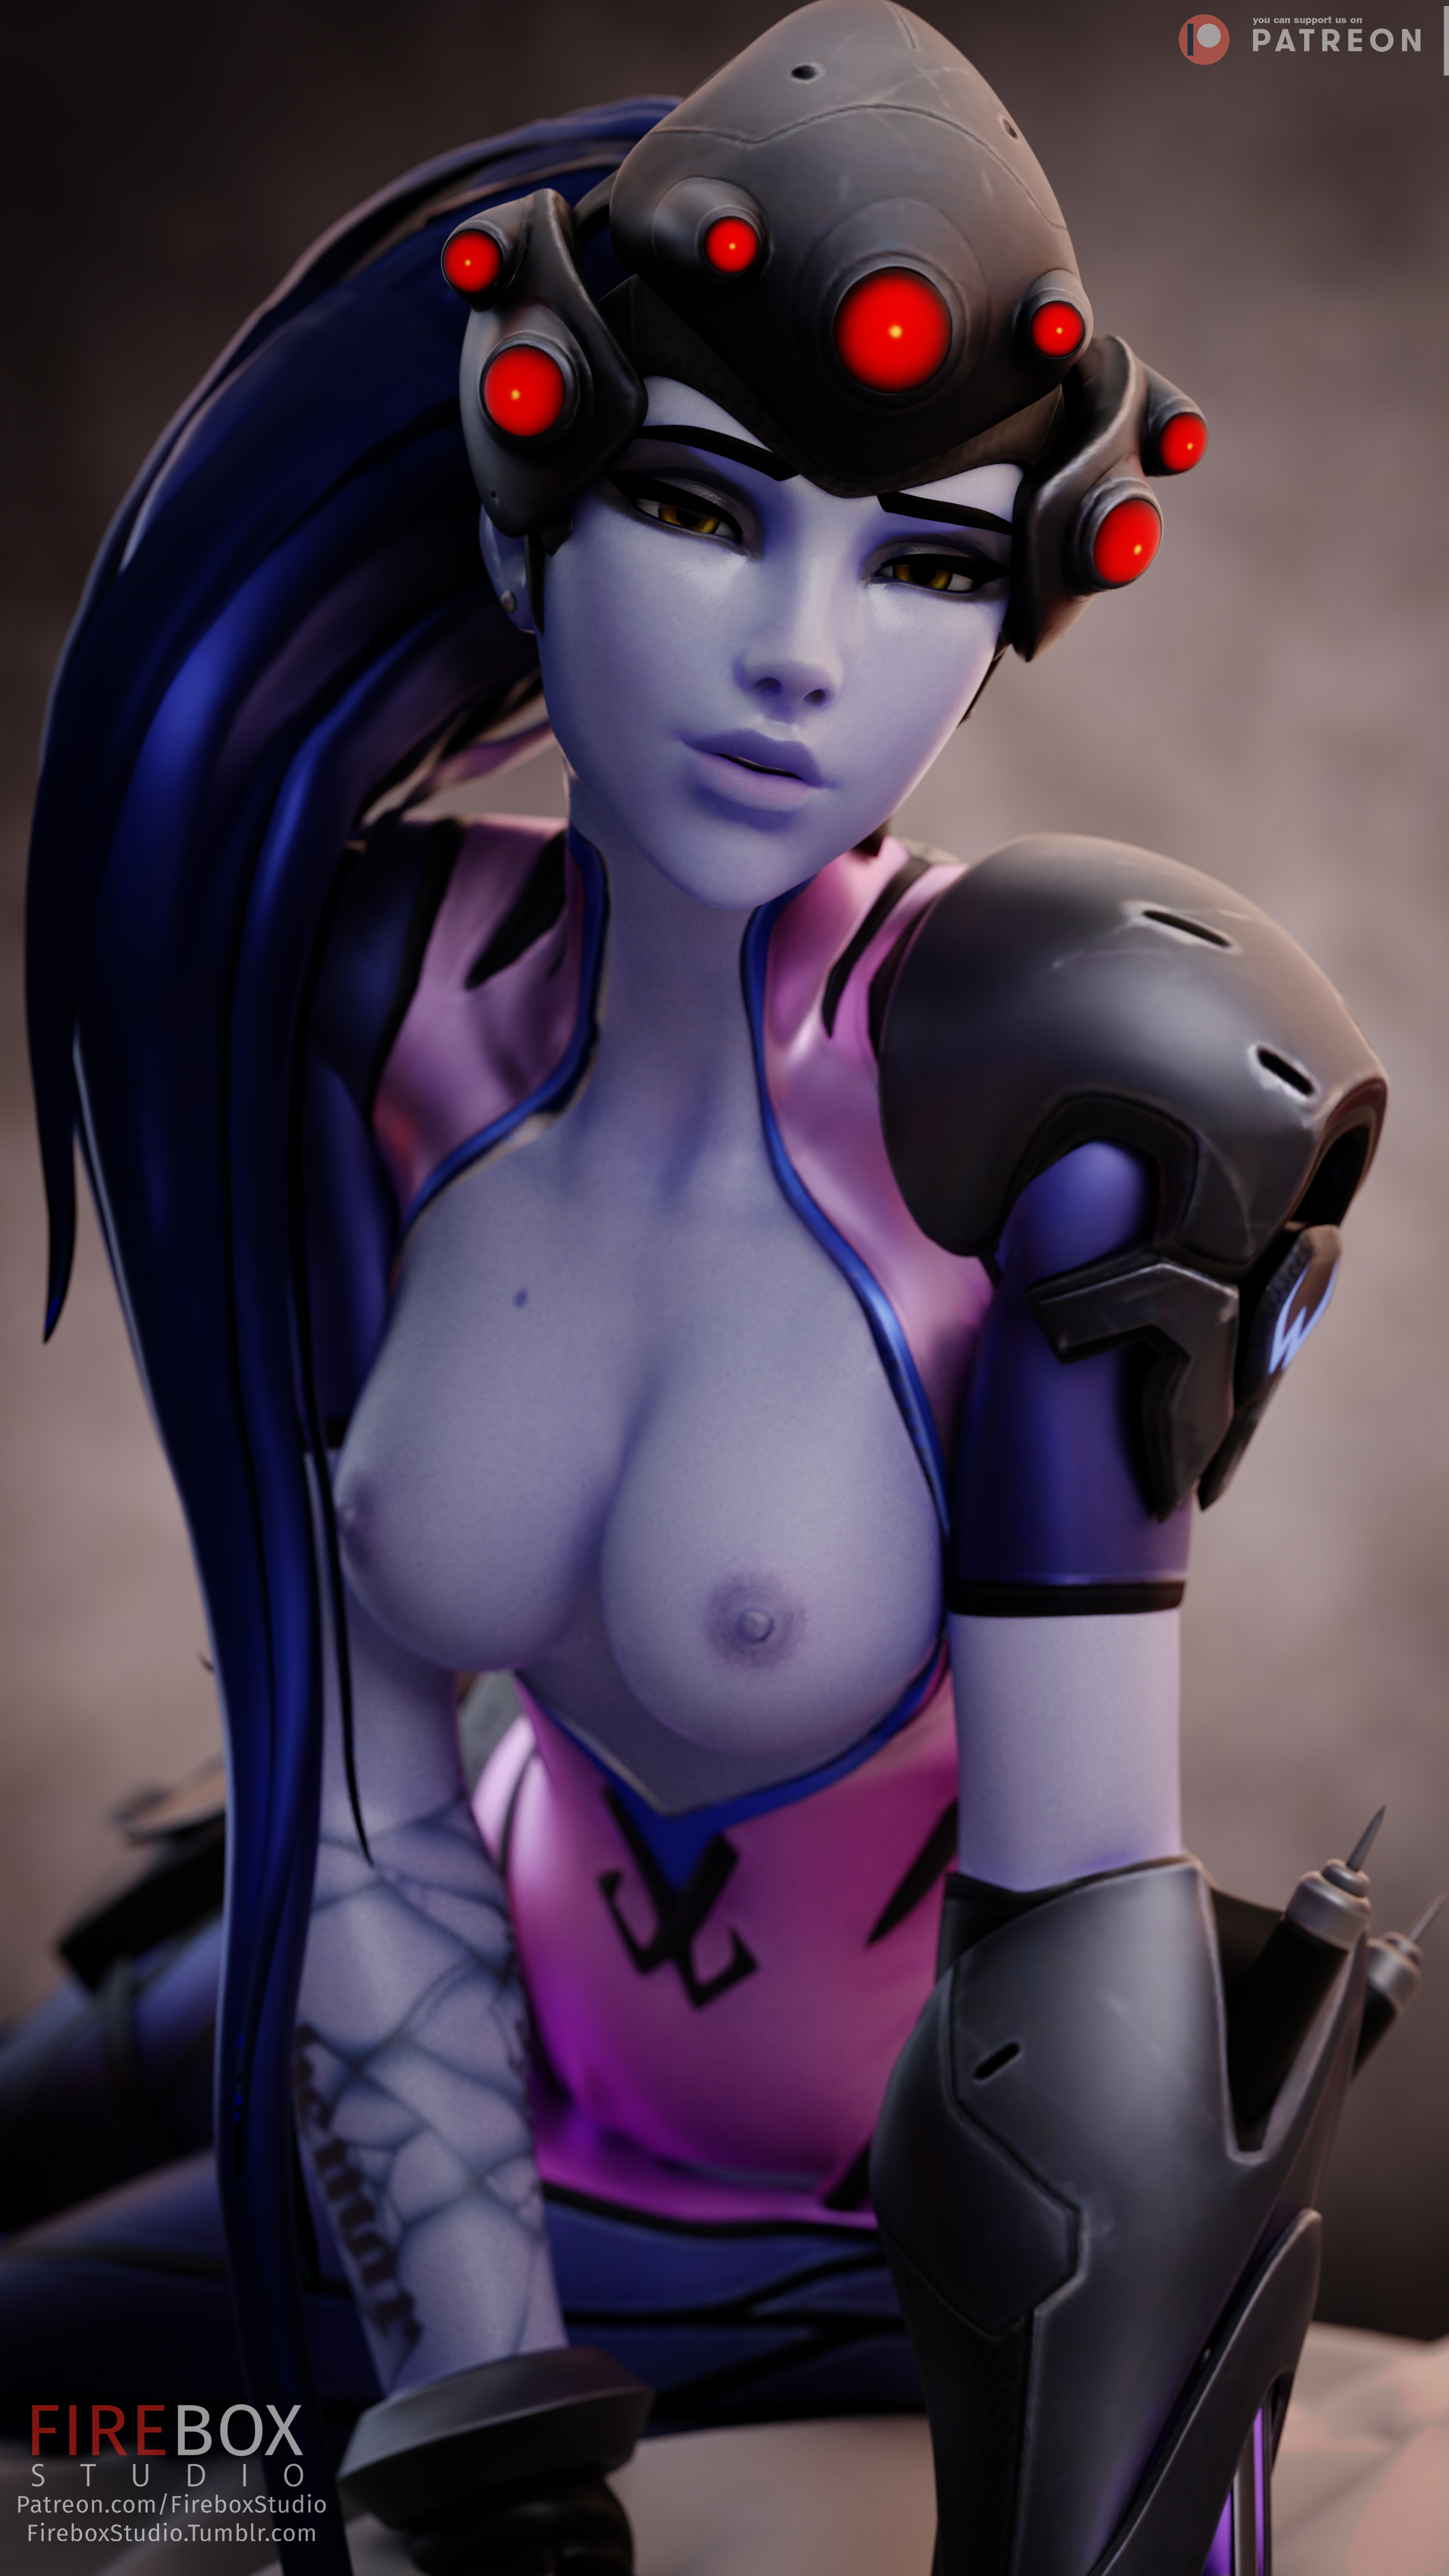 2421335 - FireboxStudio Overlook Widowmaker